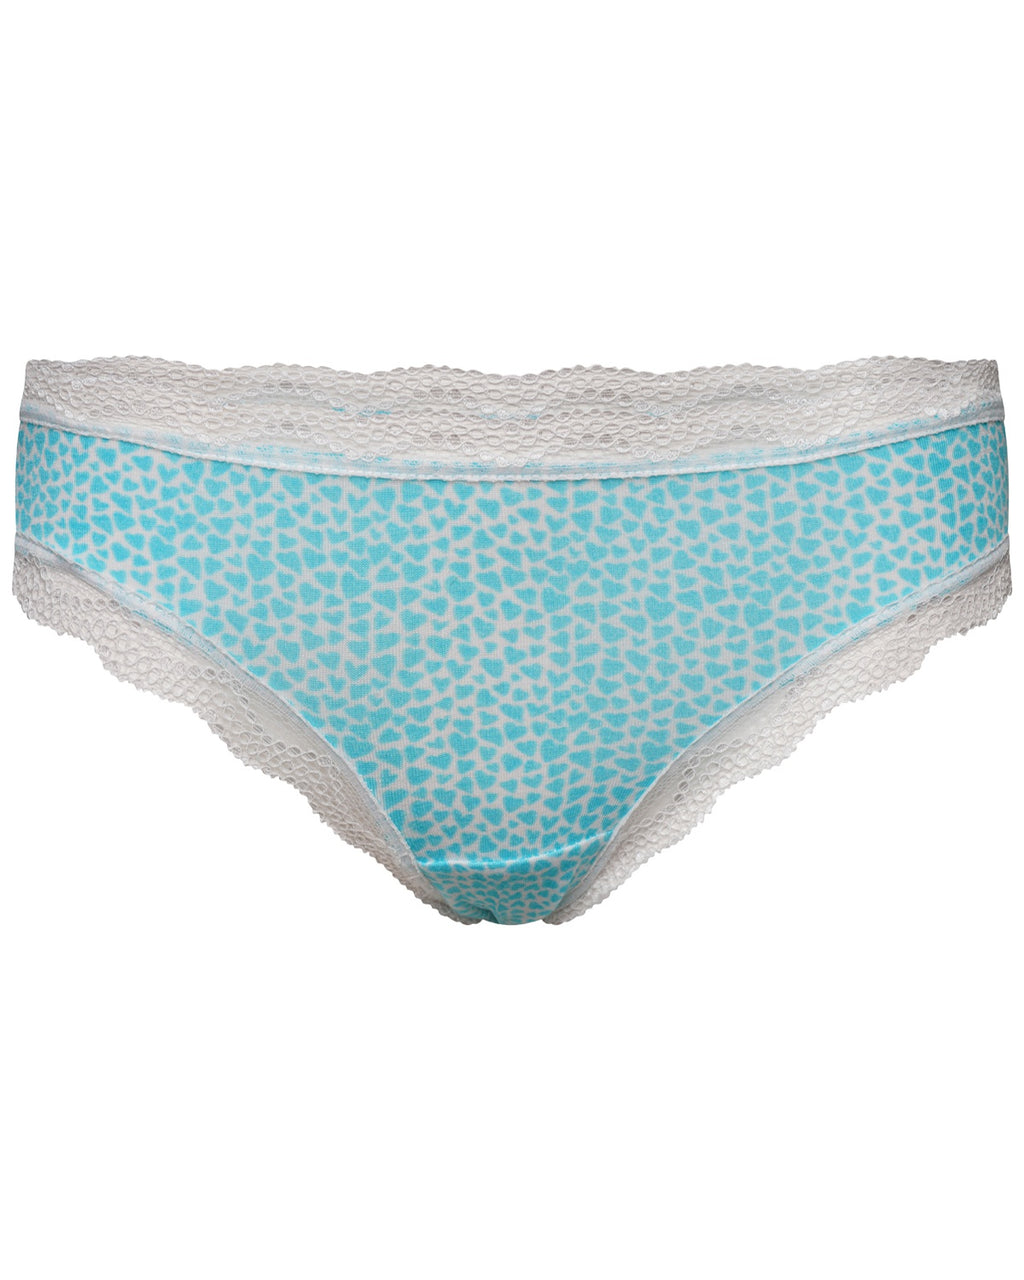 Turquoise Hearts Print Knicker